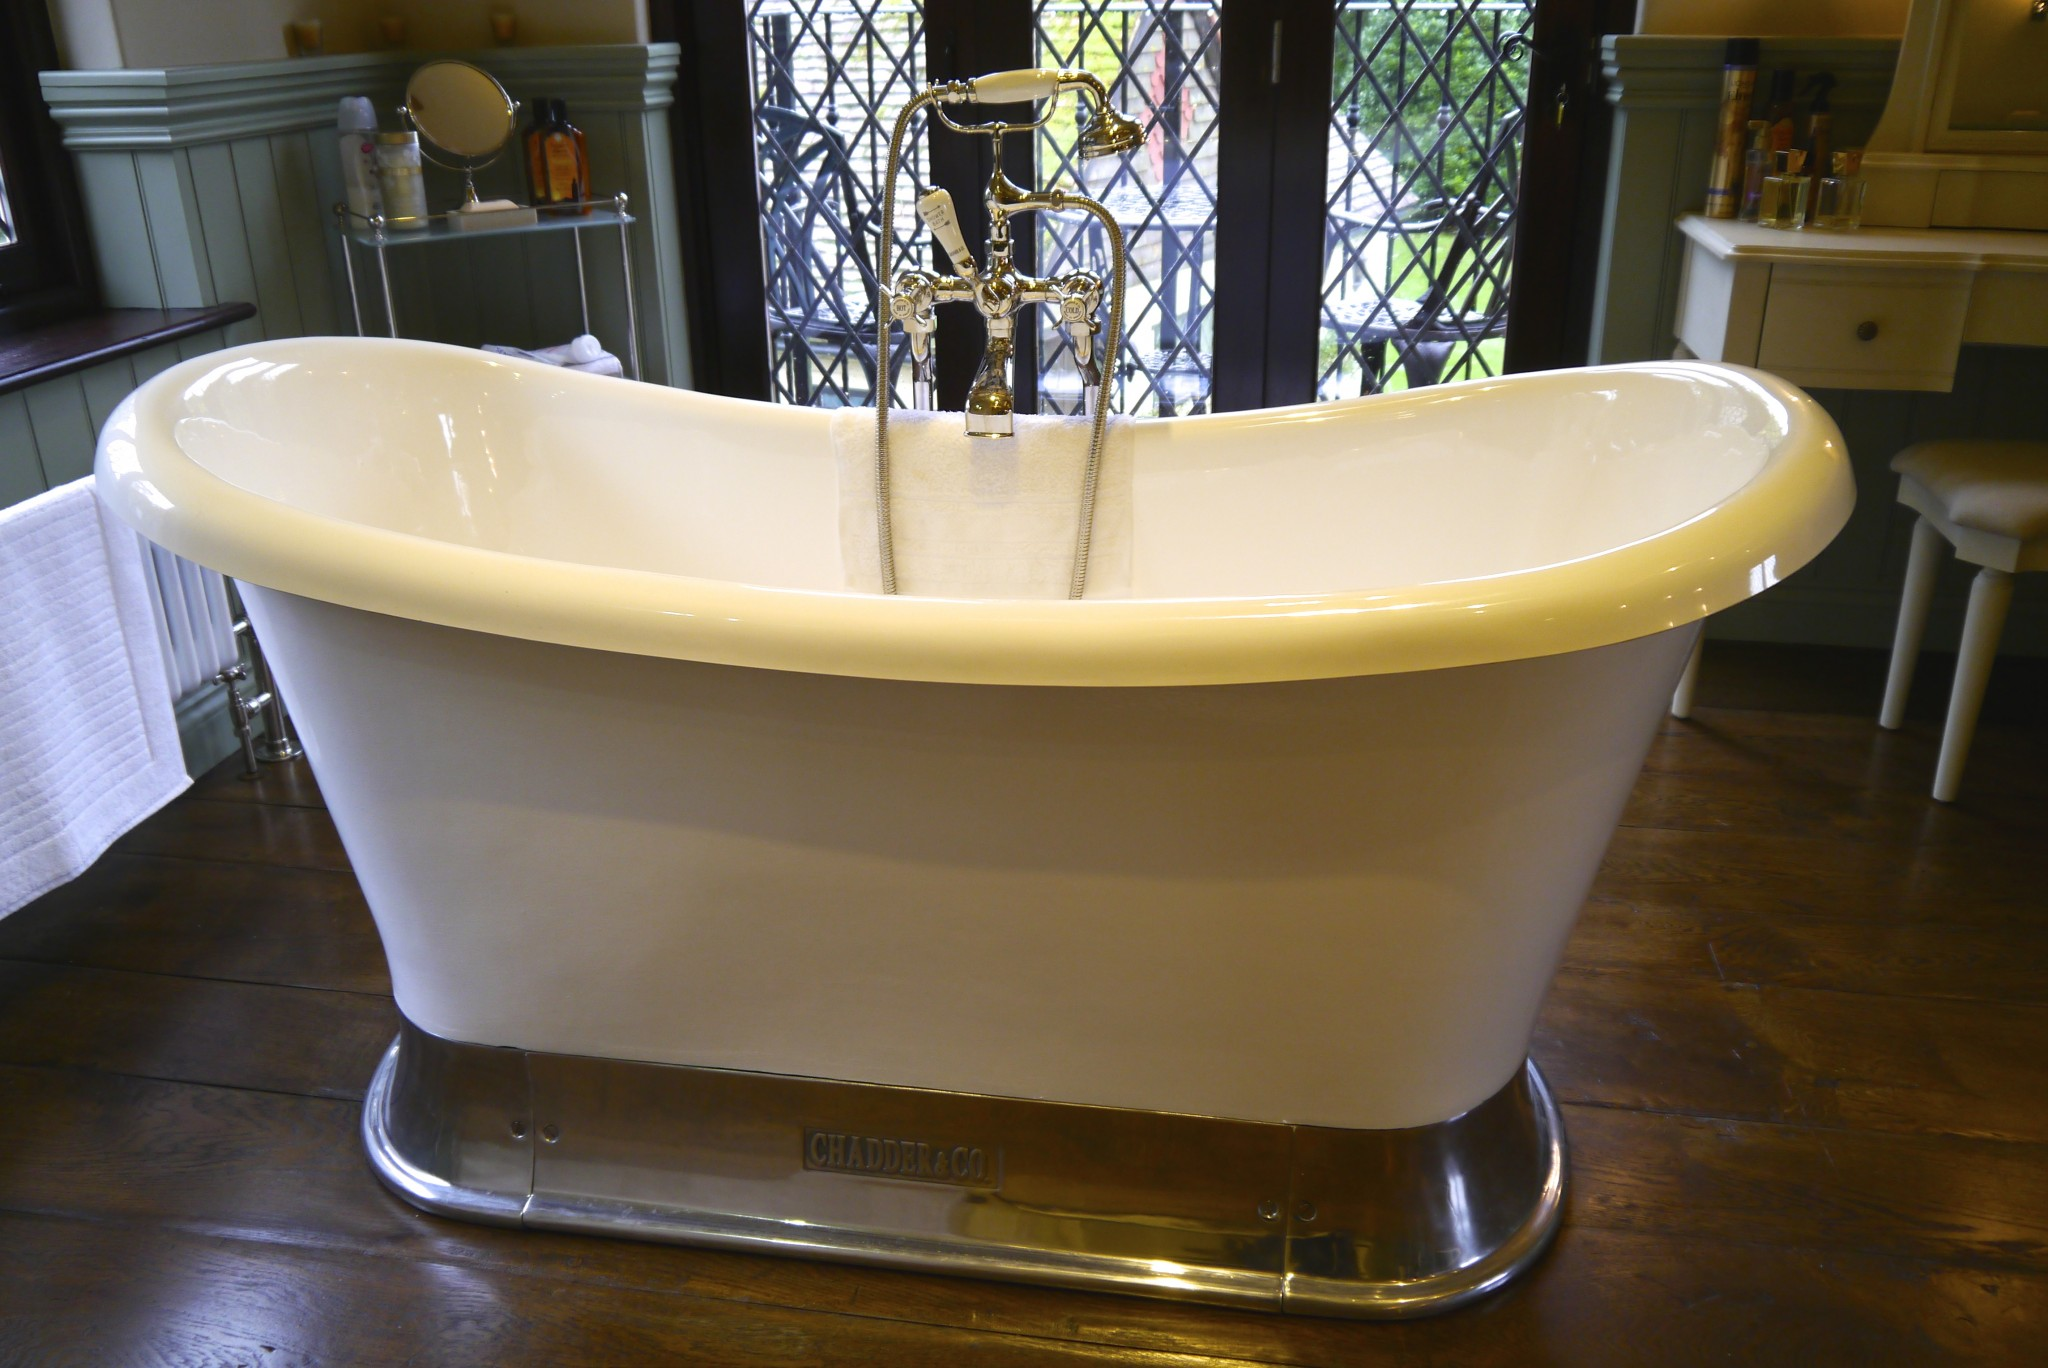 Chadder Classic French Chariot Bath, Polished Plynth with Nickel Chadder Fittings